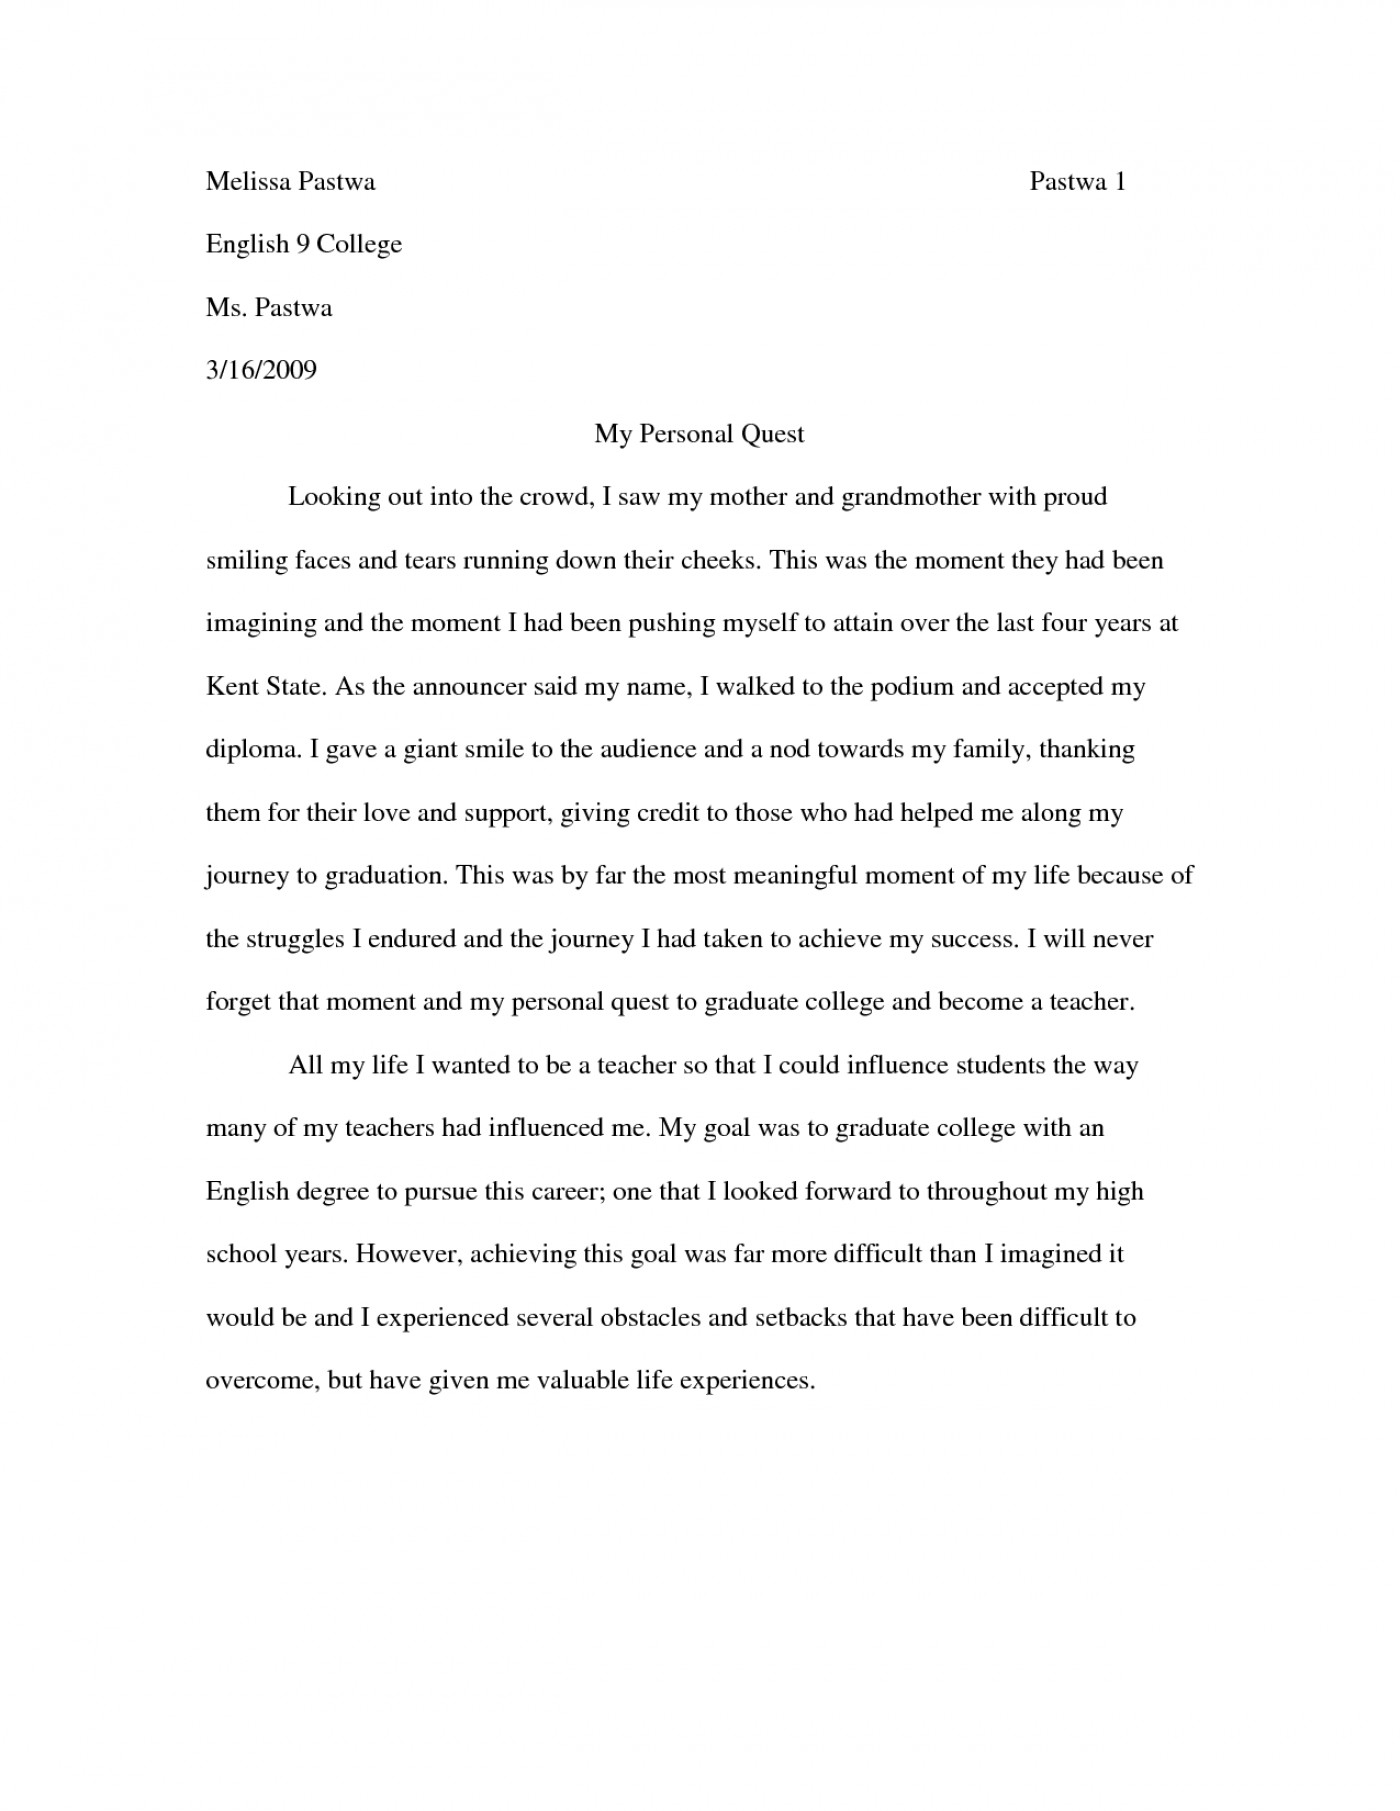 007 Essay Example Narrative Dialogue Of L Magnificent About Yourself Introduction Friendship 1400